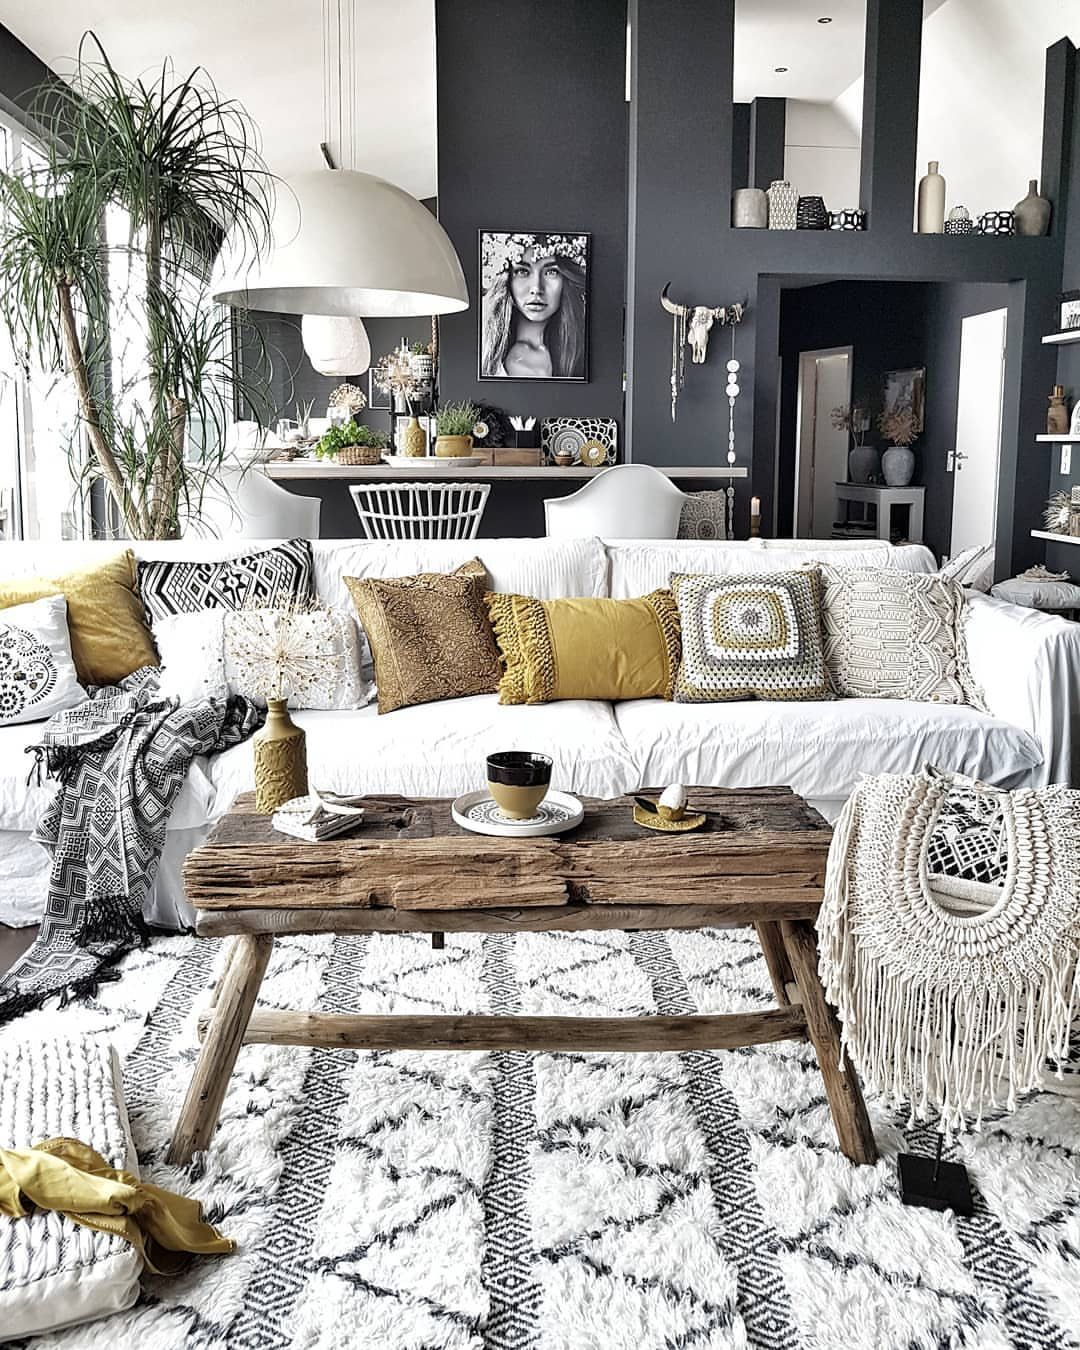 20 Ideas To Inviting Modern Theme With Modern Chic Decor Boho